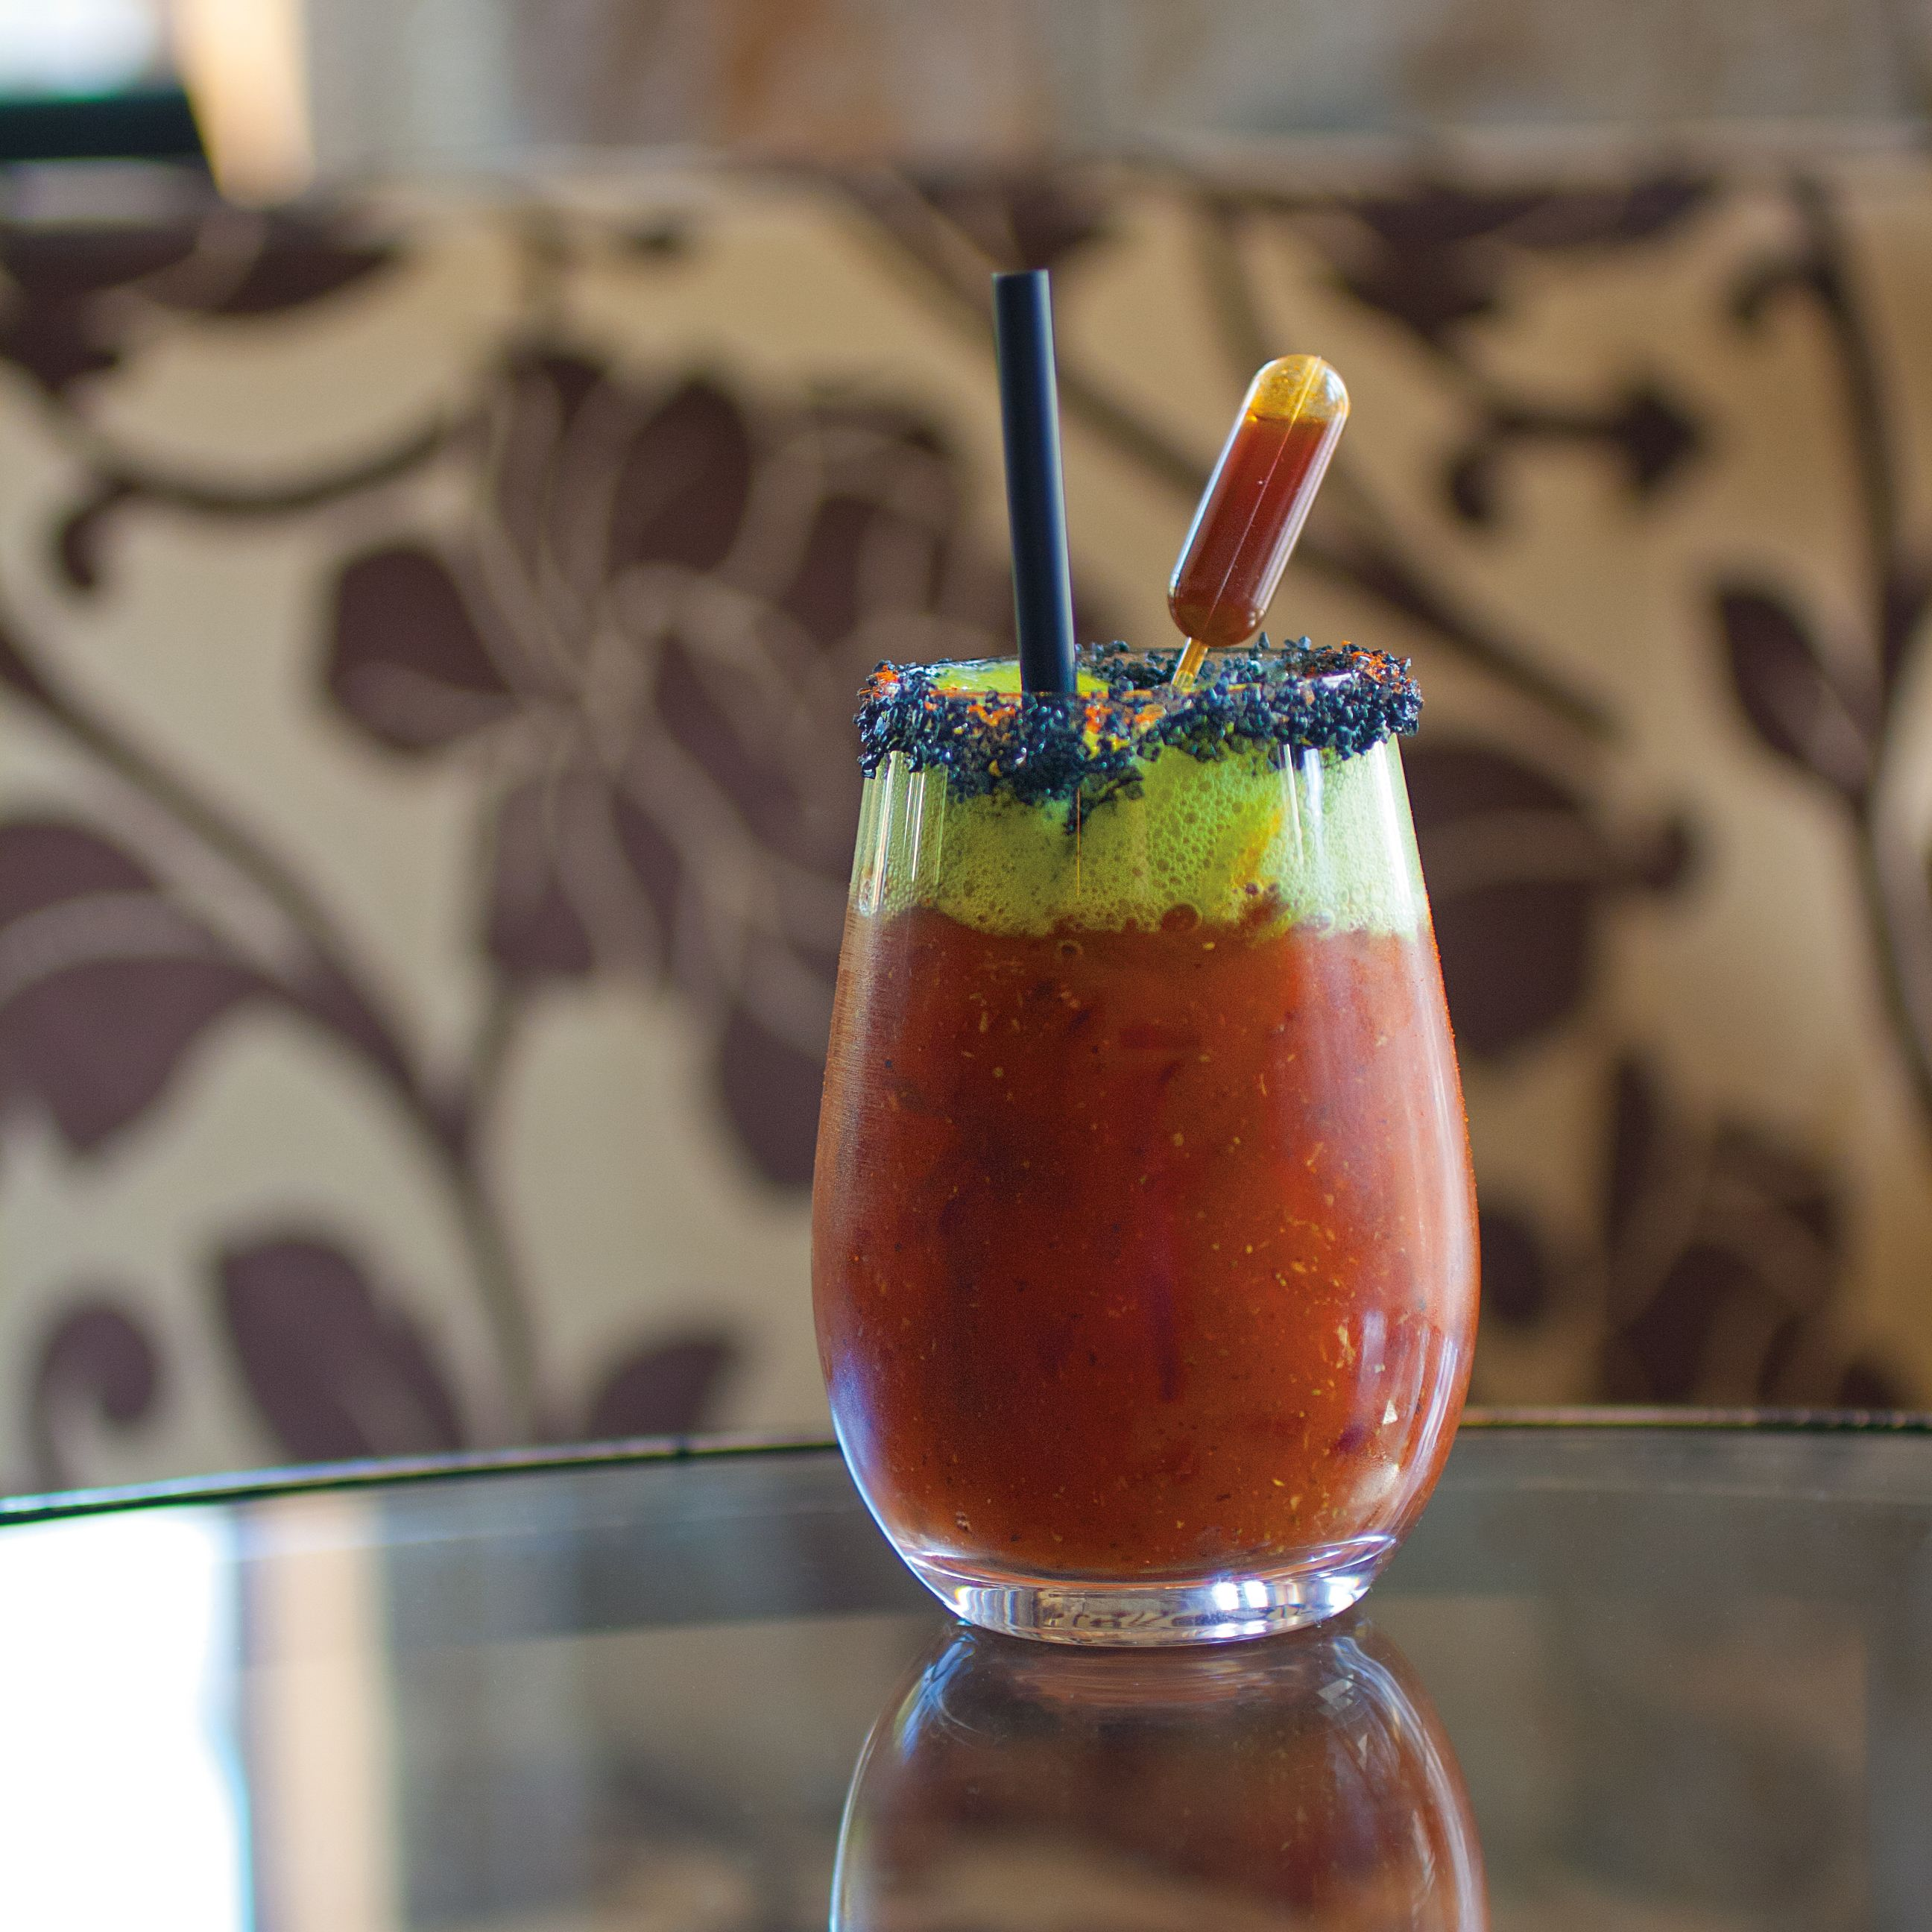 Park city winter 2013 dining hail mary bloody mary hlkpr7